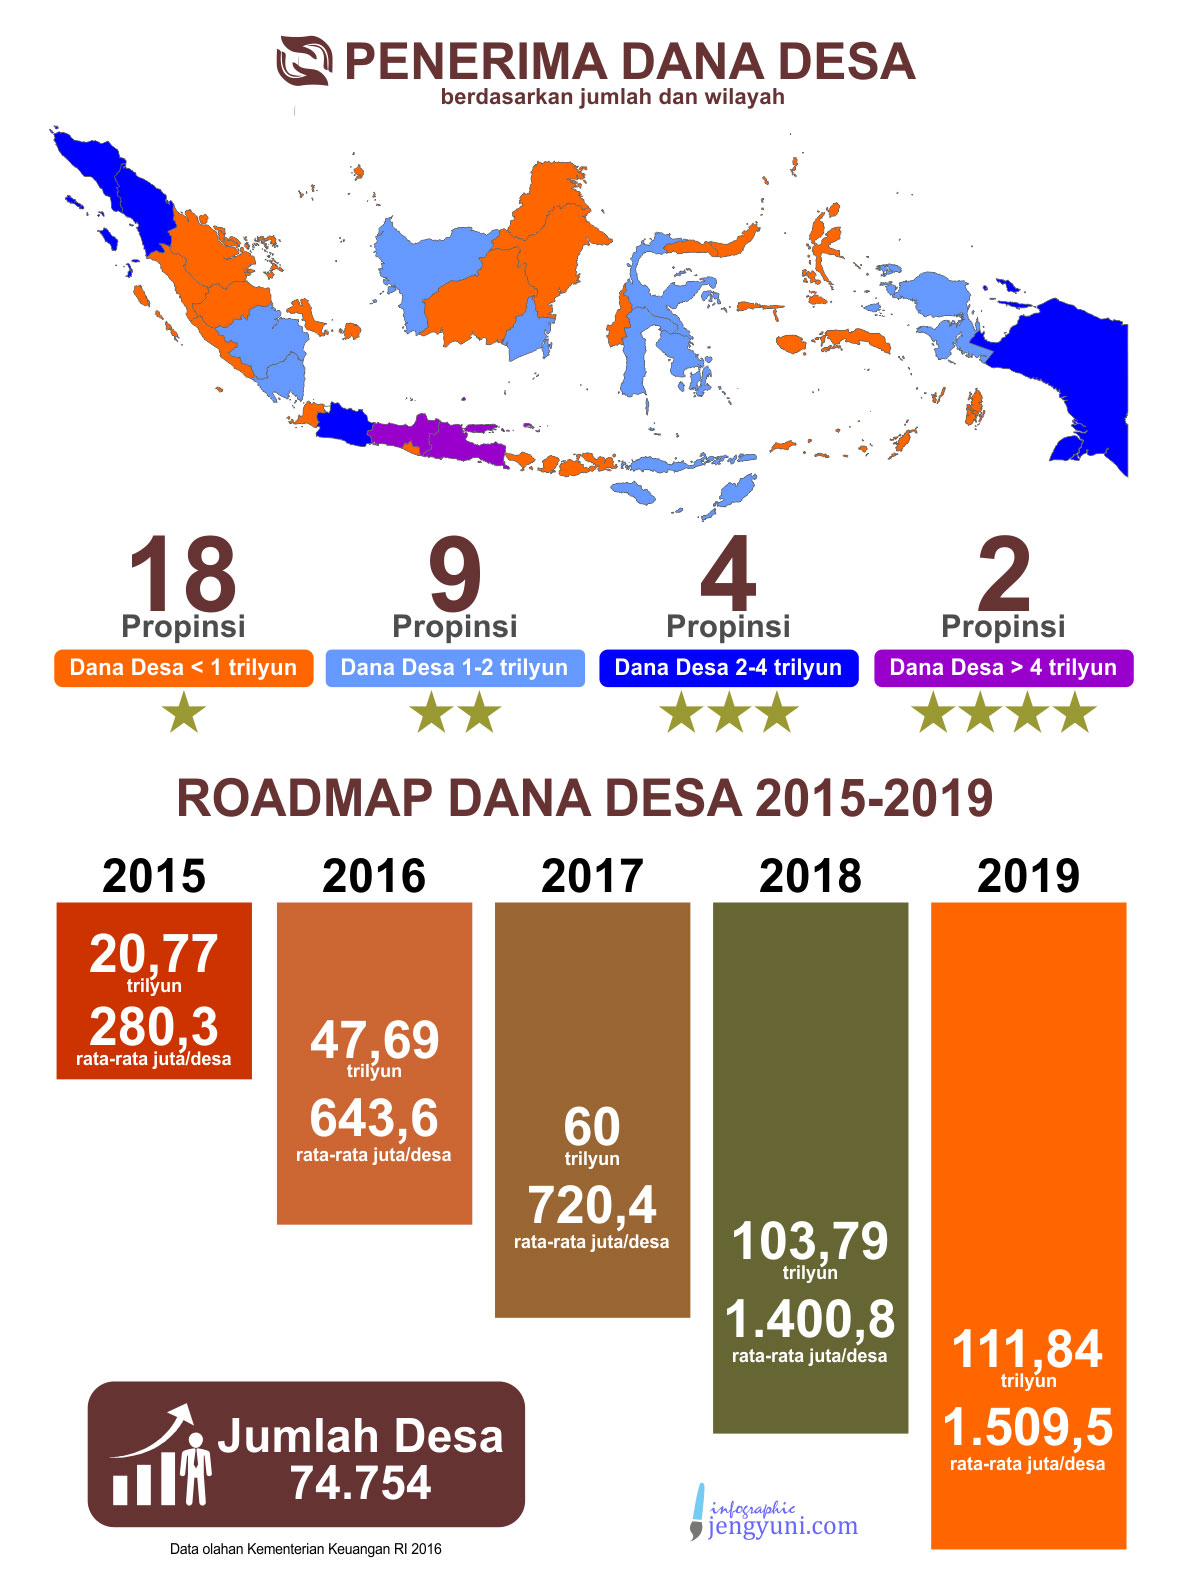 Roadmap Dana Desa